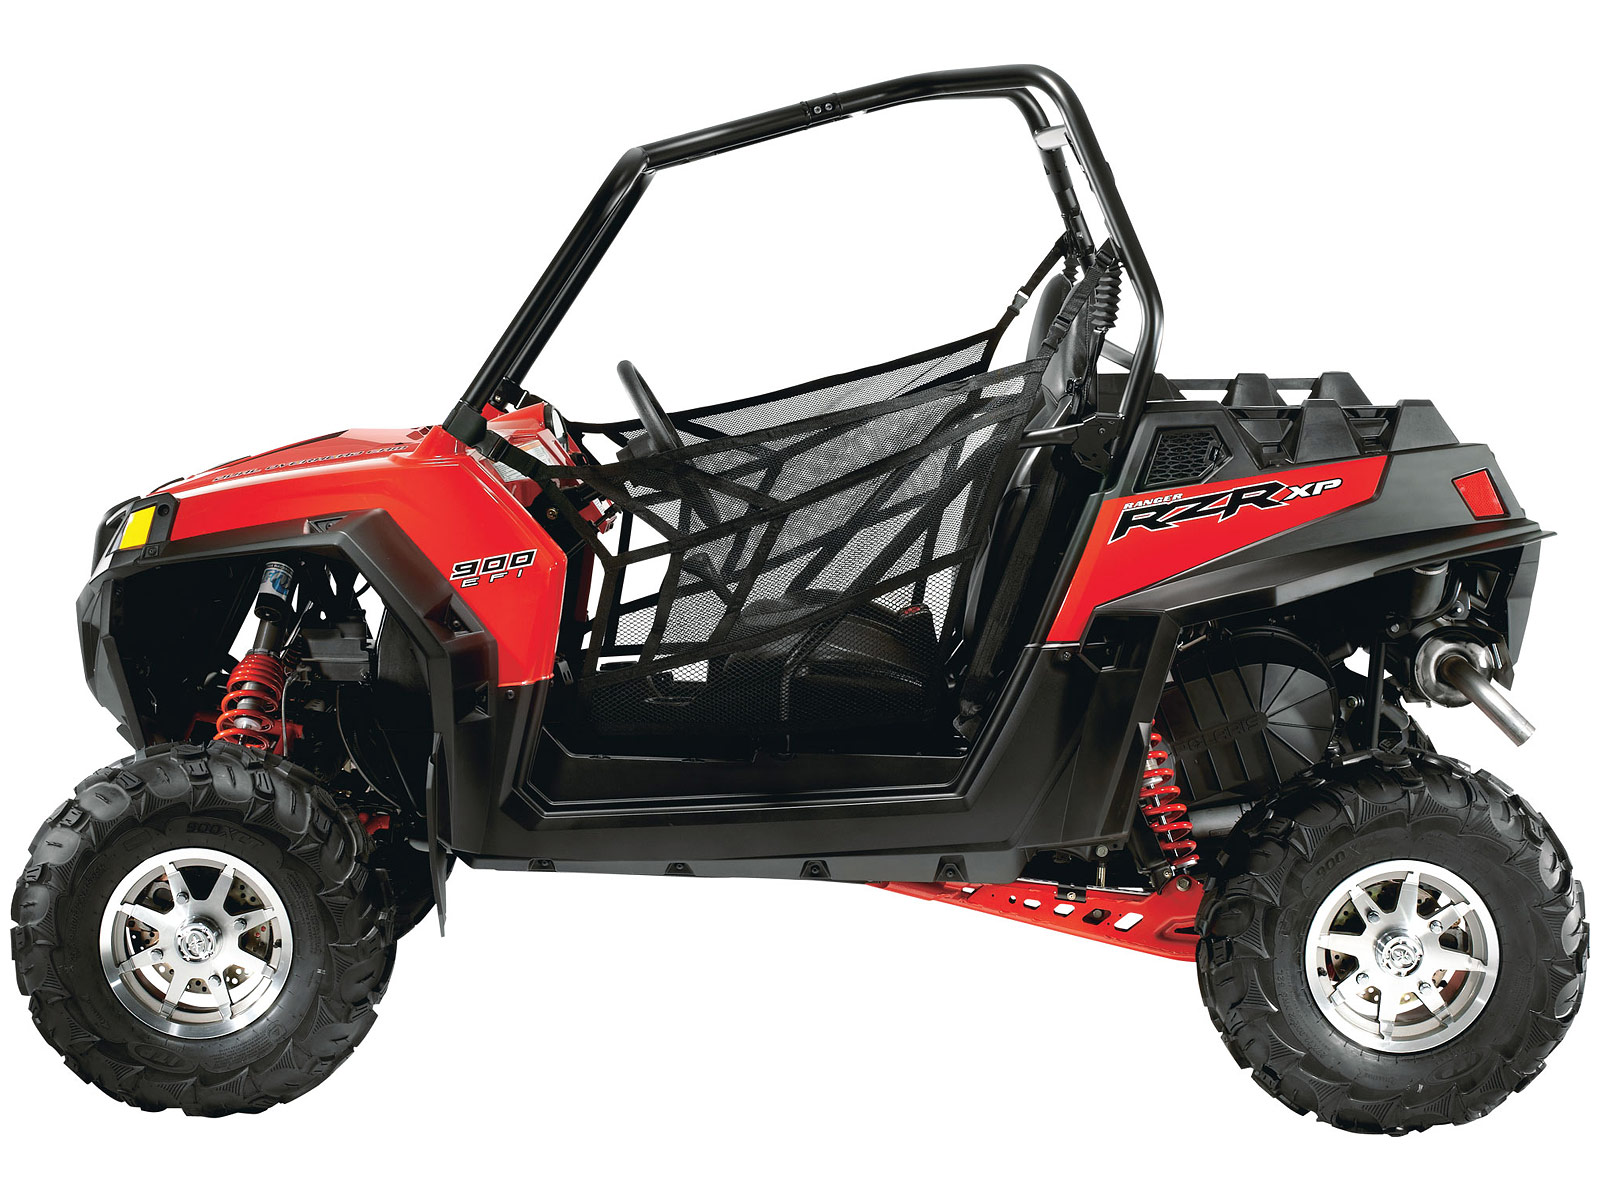 polaris ranger rzr 4 specifications car interior design. Black Bedroom Furniture Sets. Home Design Ideas